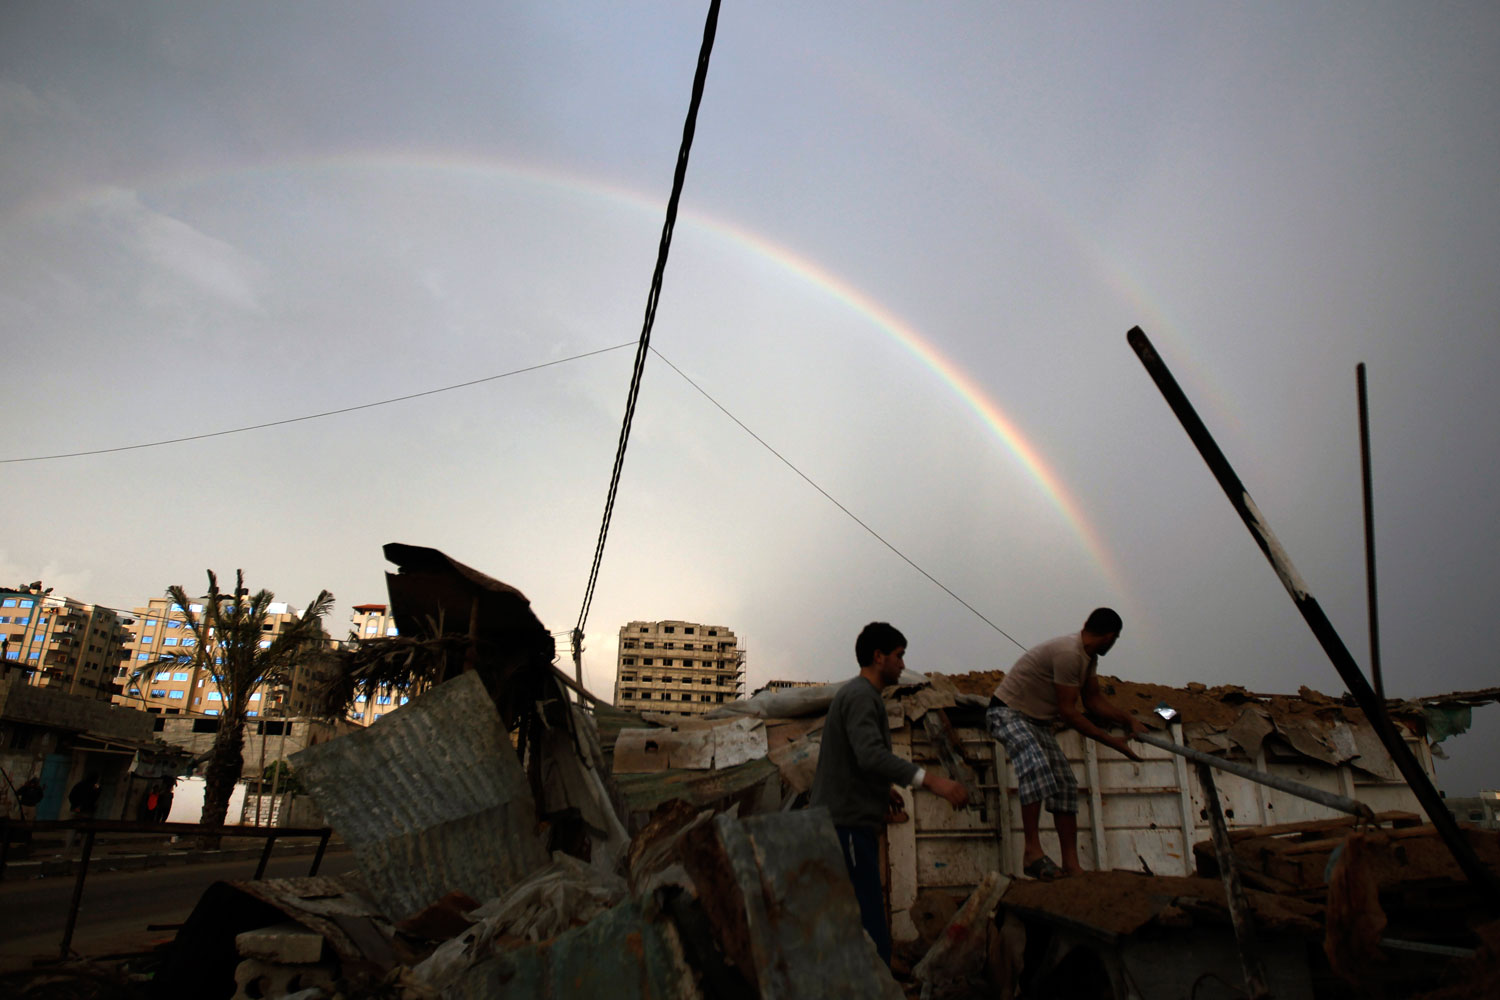 Peace in the Middle East                               Nov. 23, 2012. Palestinians inspect the rubble of a destroyed house as a rainbow arcs over Gaza City.